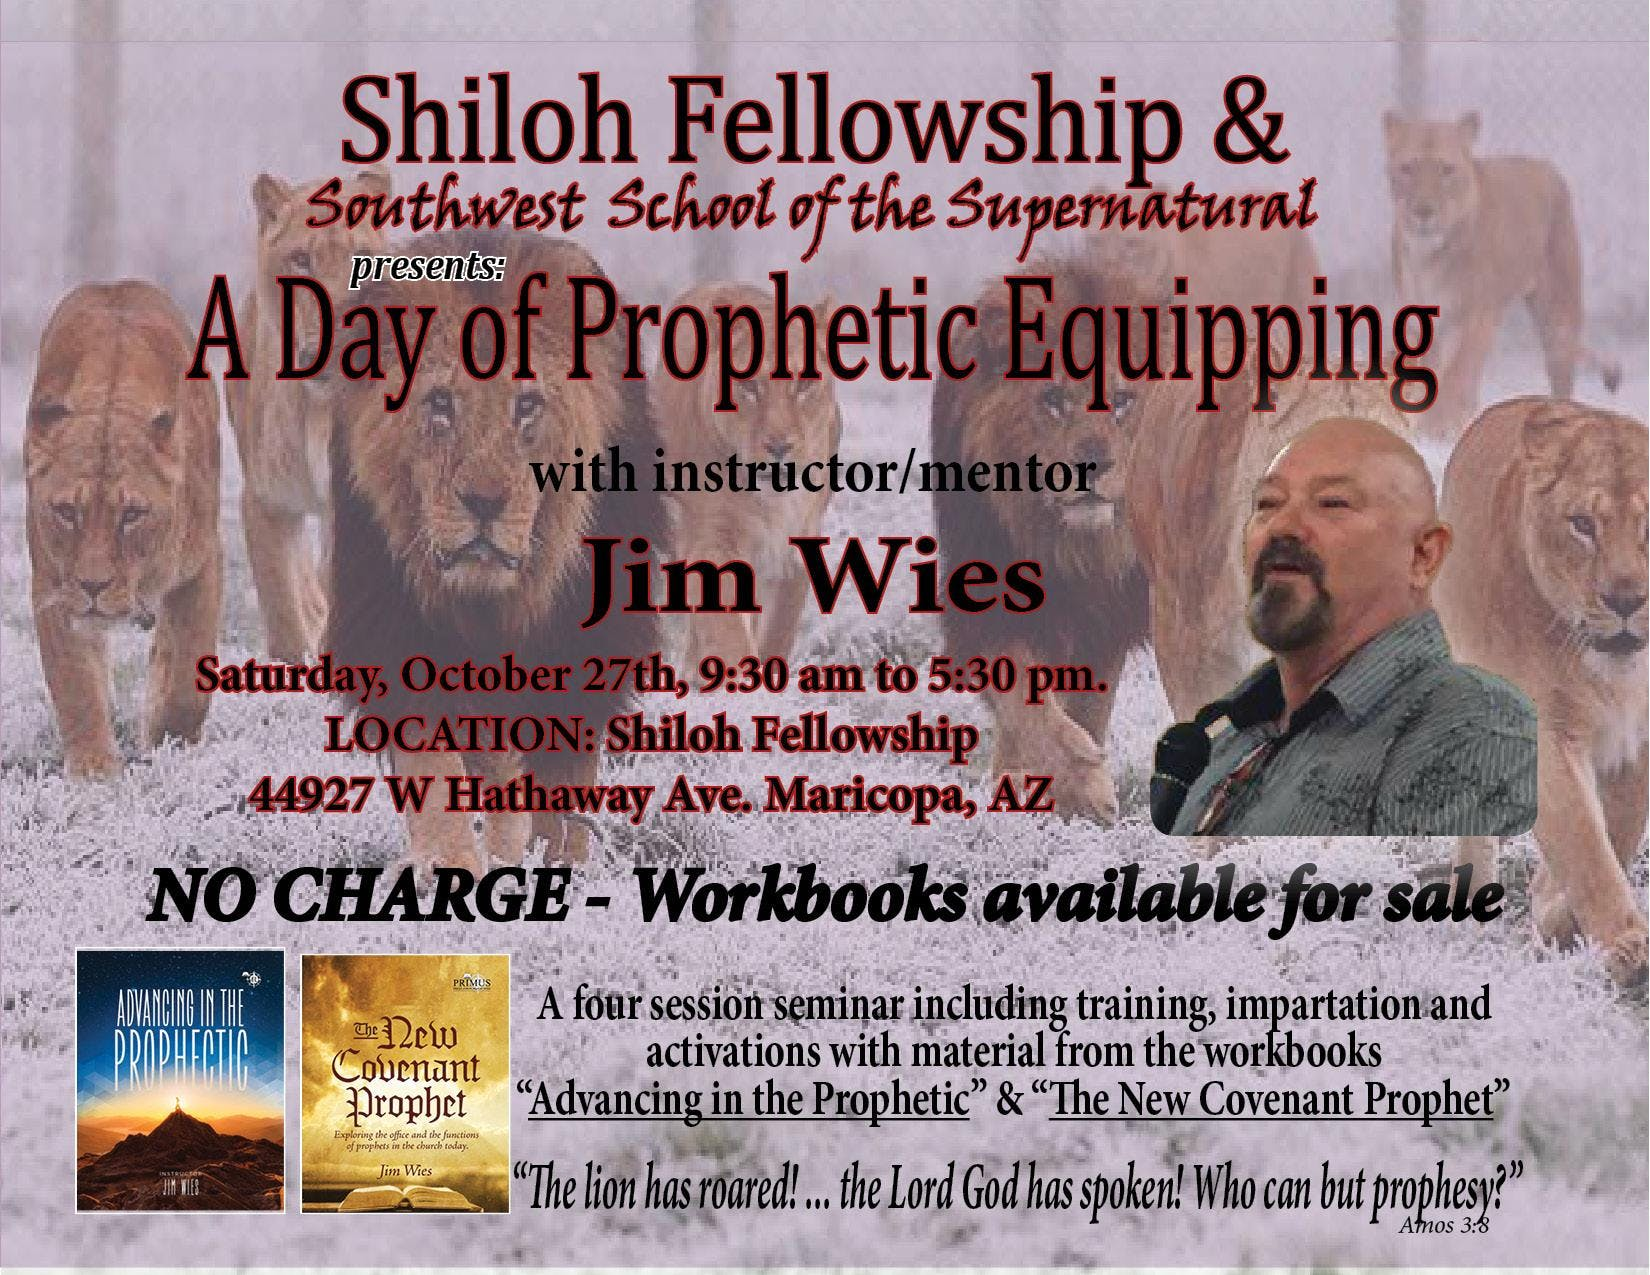 A Day of Prophetic Equipping at Shiloh Fellowship, Maricopa